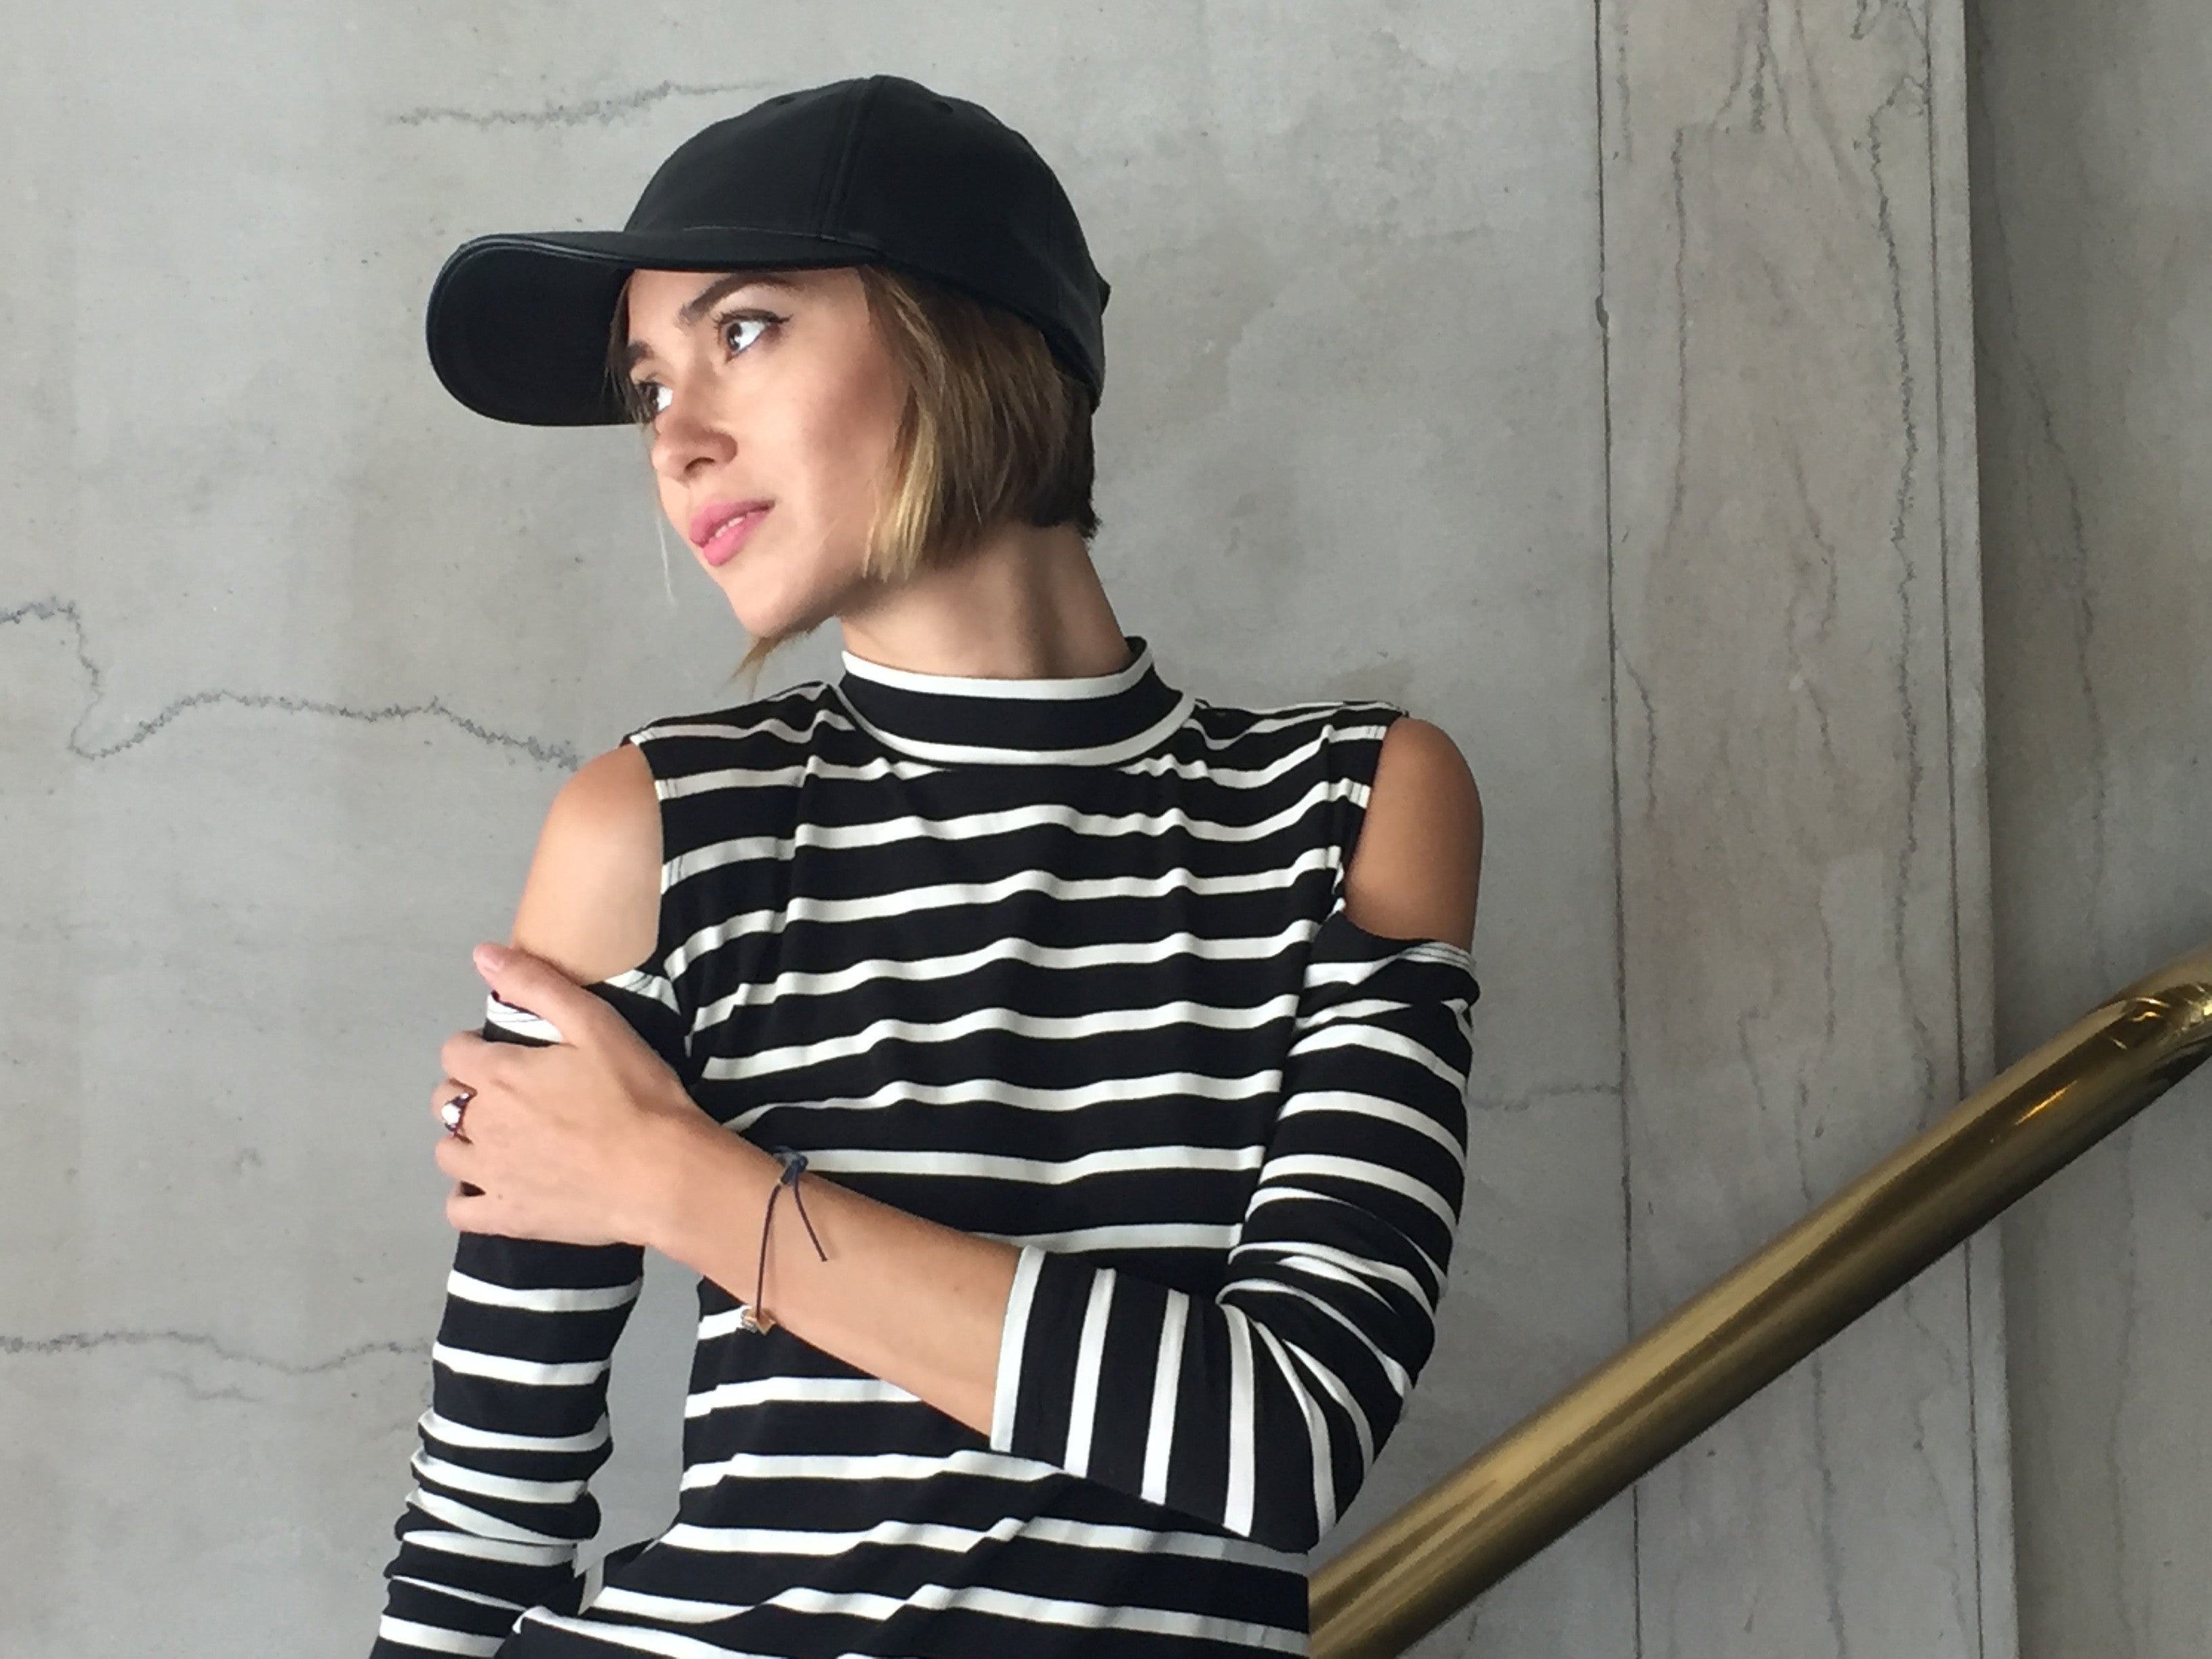 Long sleeve cold shoulder mock neck top in black and white stripes.